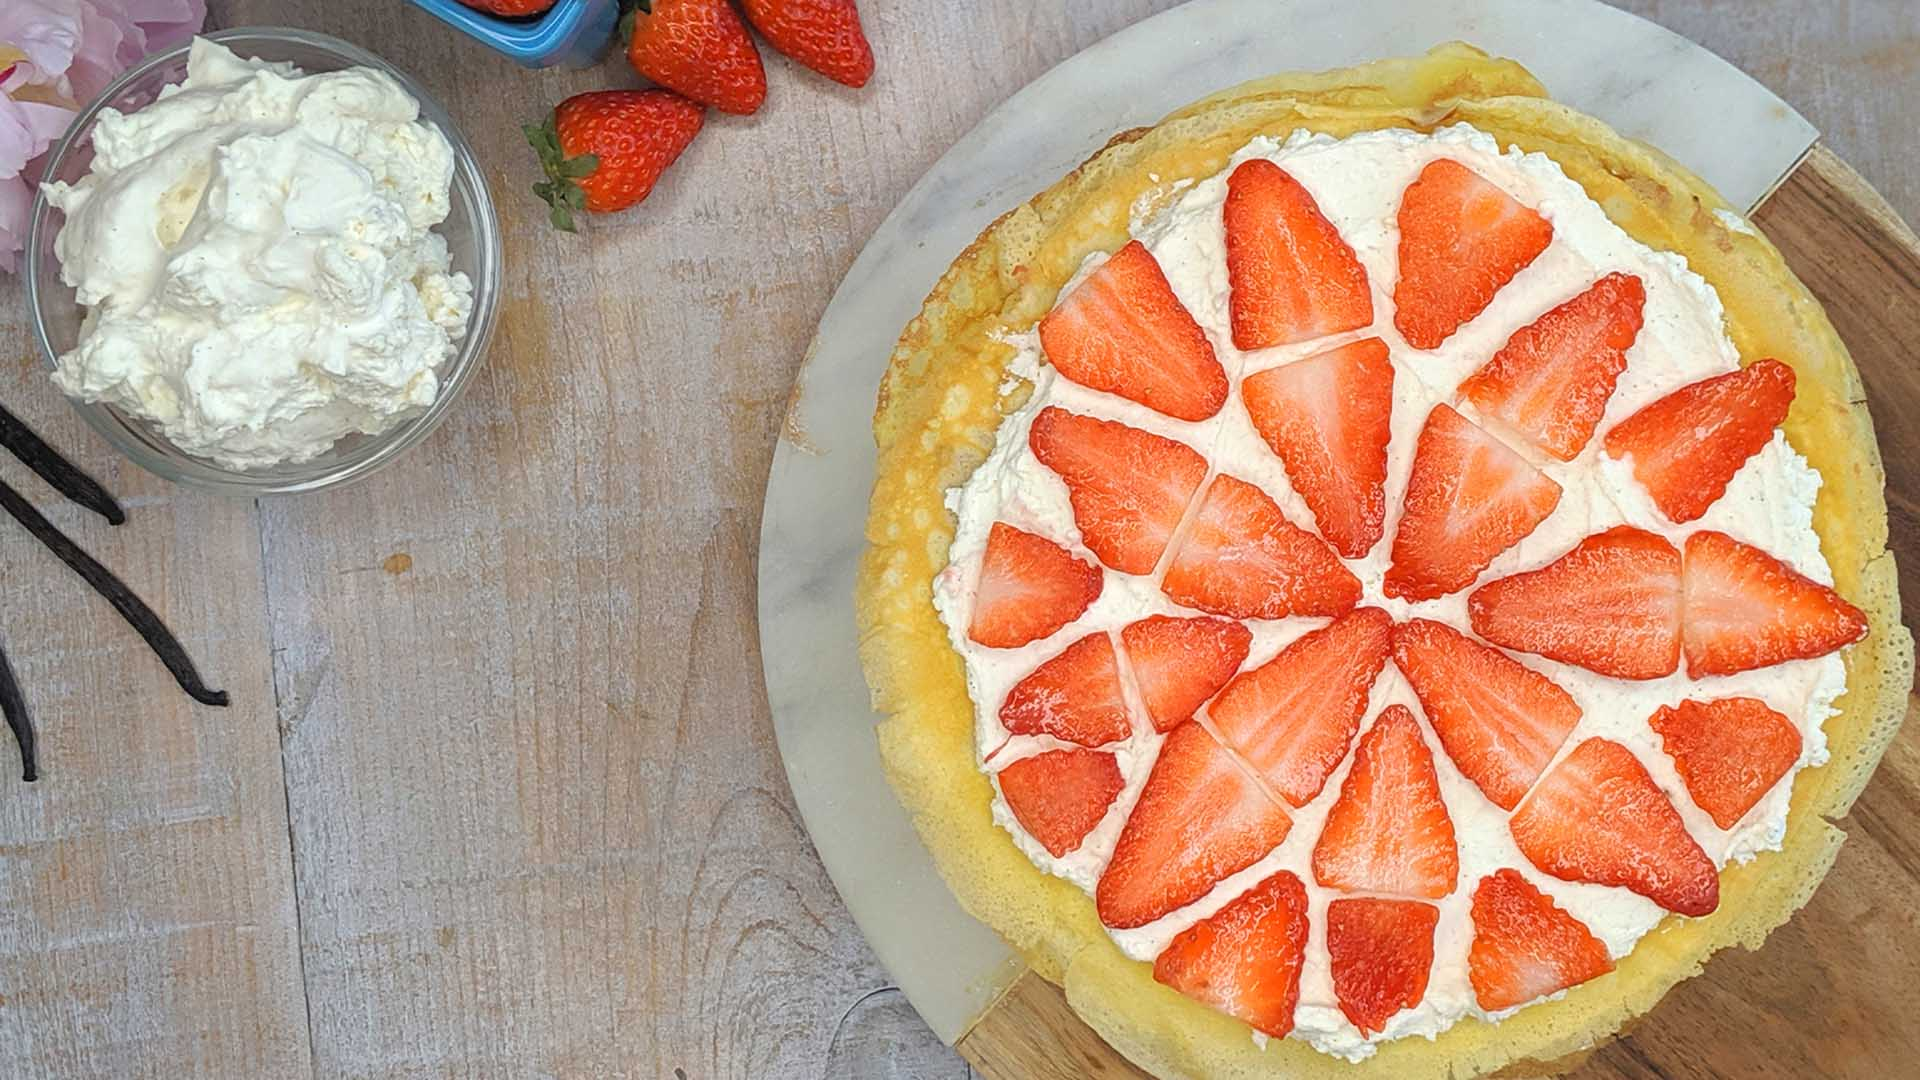 Overhead shot of round crepe cake topped with strawberry slices on wooden surface.